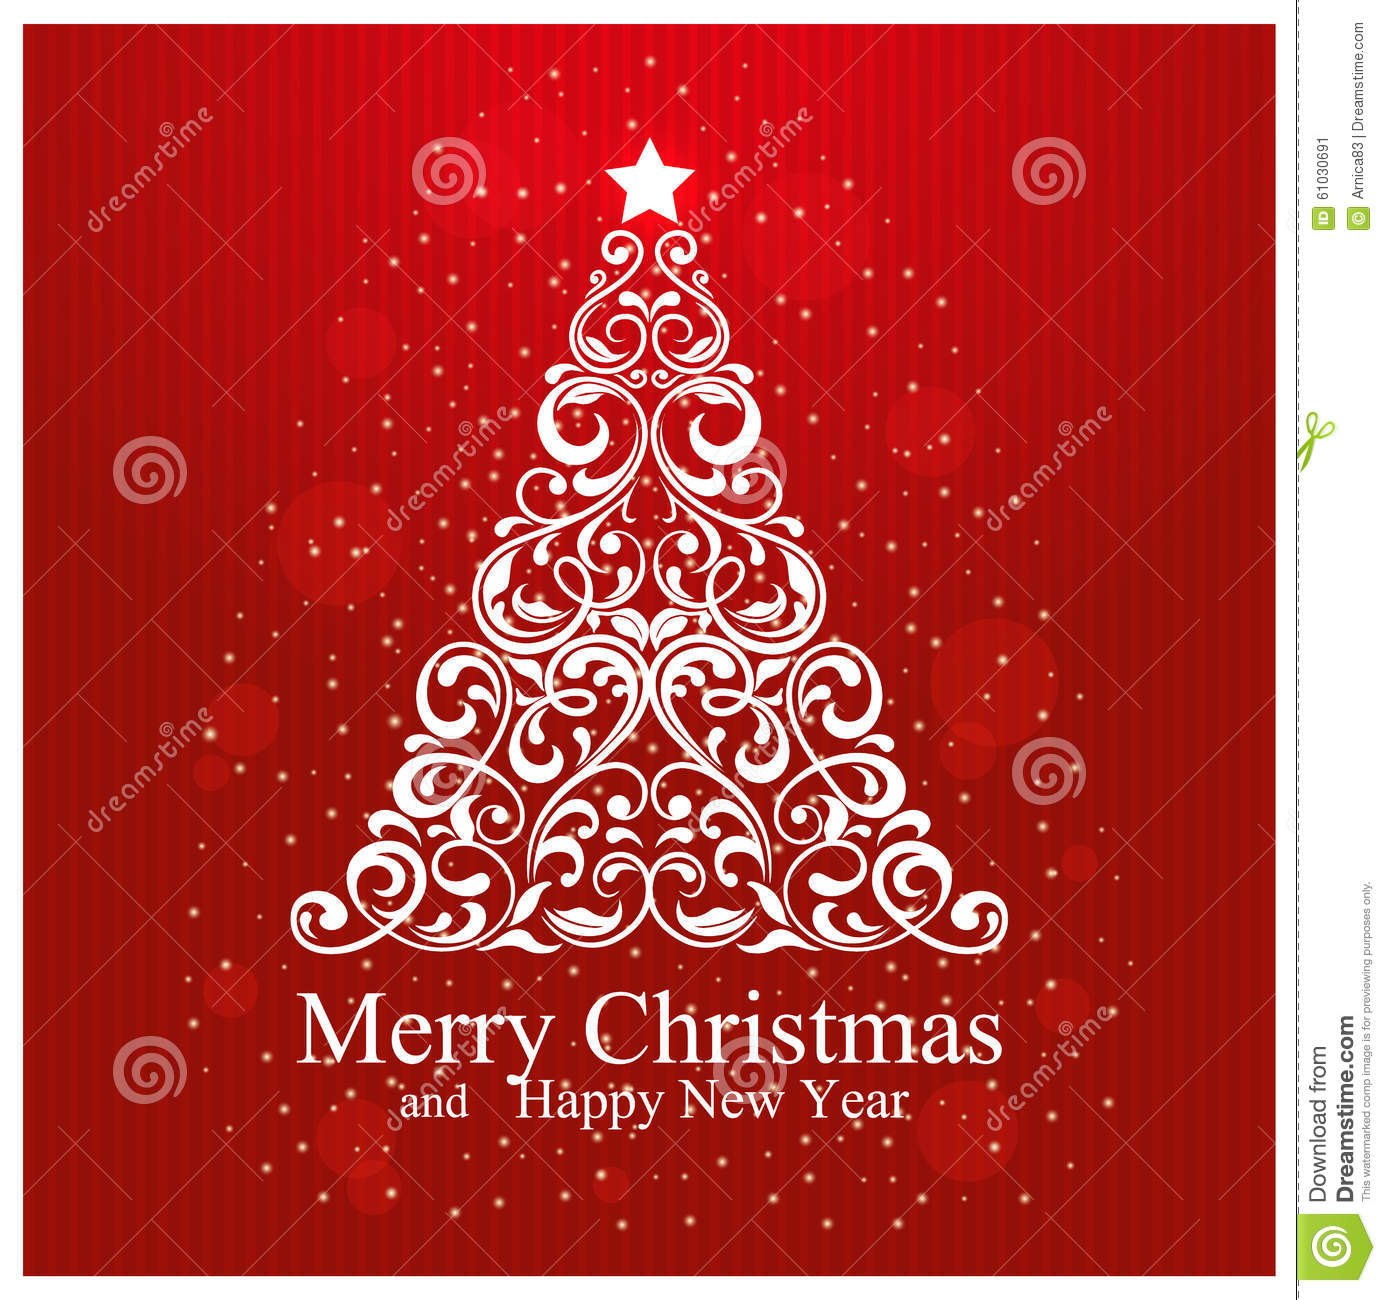 merry christmas and happy new year card with beautiful